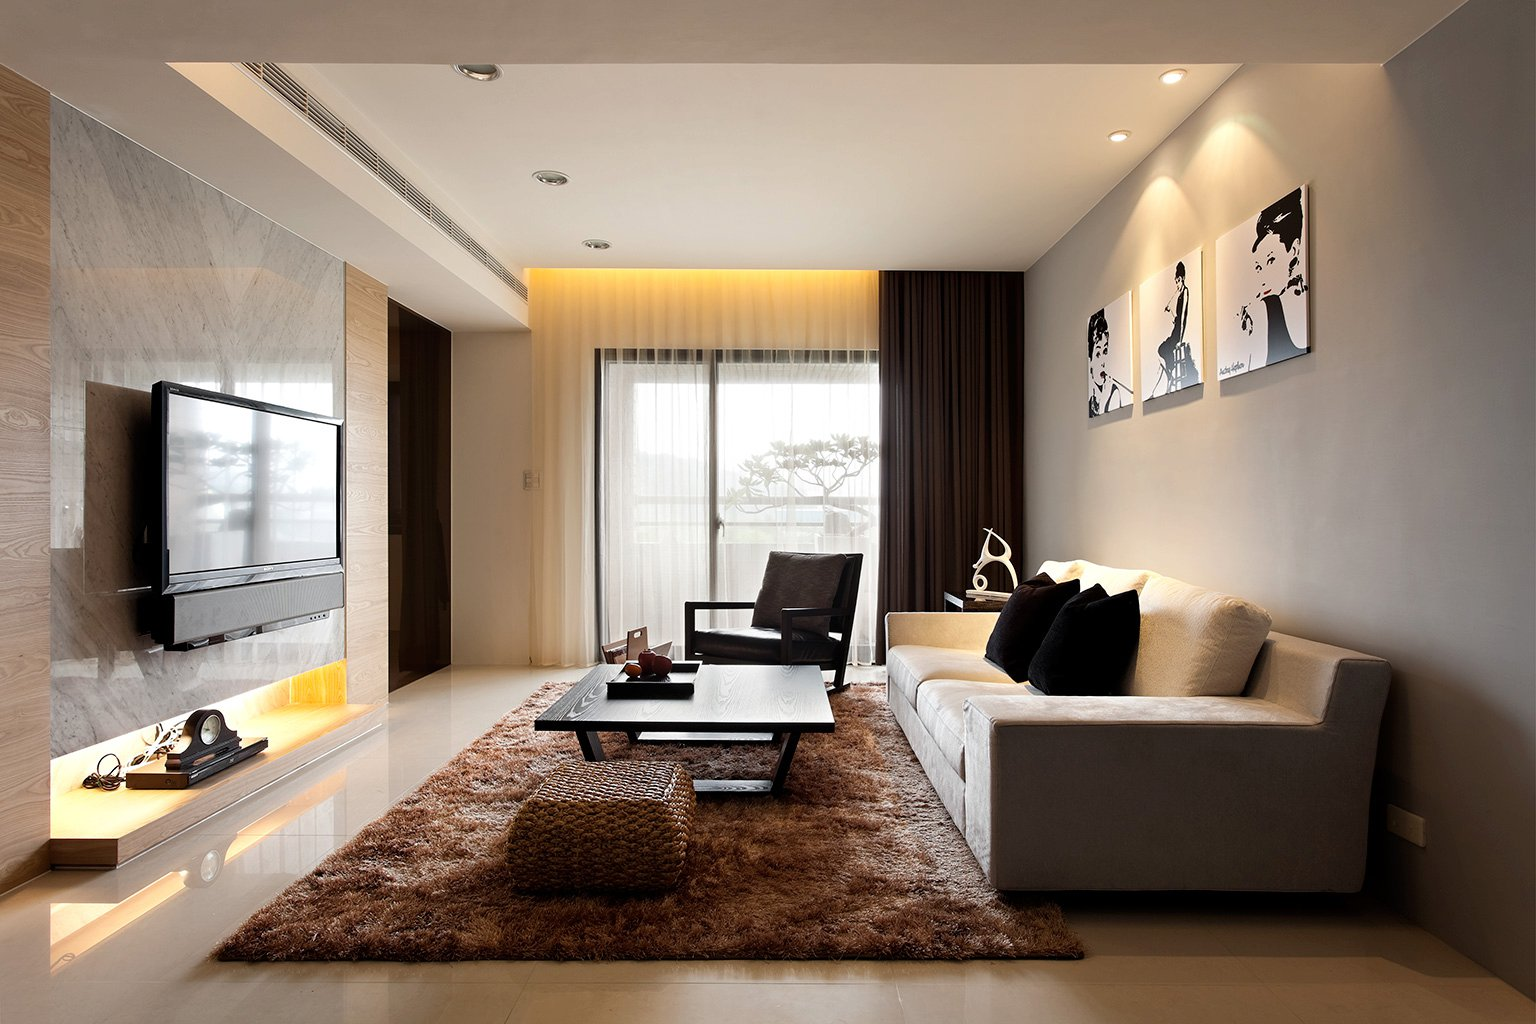 Fabulous Modern Living Room Decorations 1536 x 1024 · 238 kB · jpeg